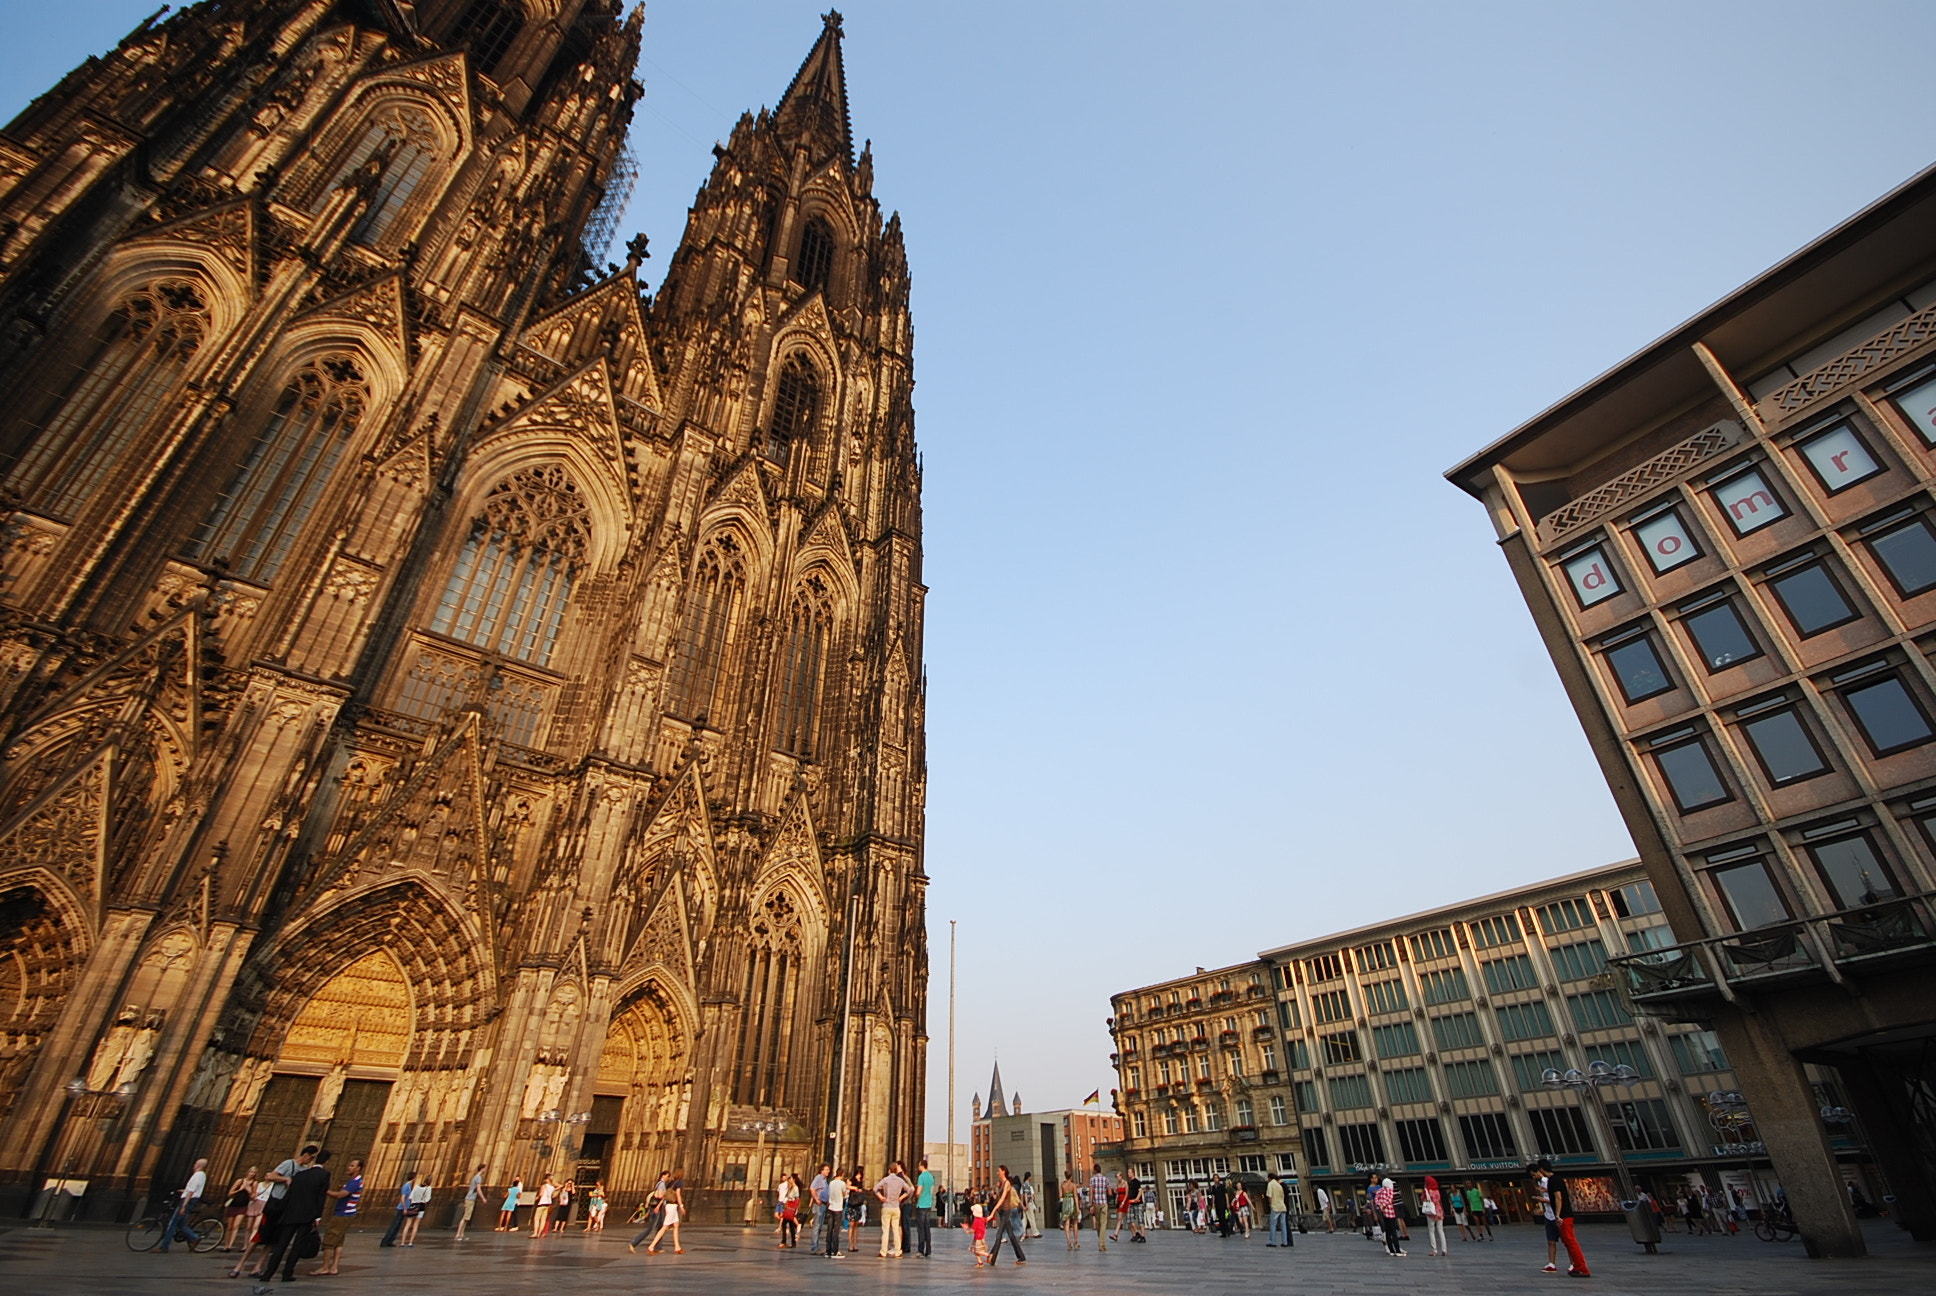 Photograph Koln by nicola sulis on 500px